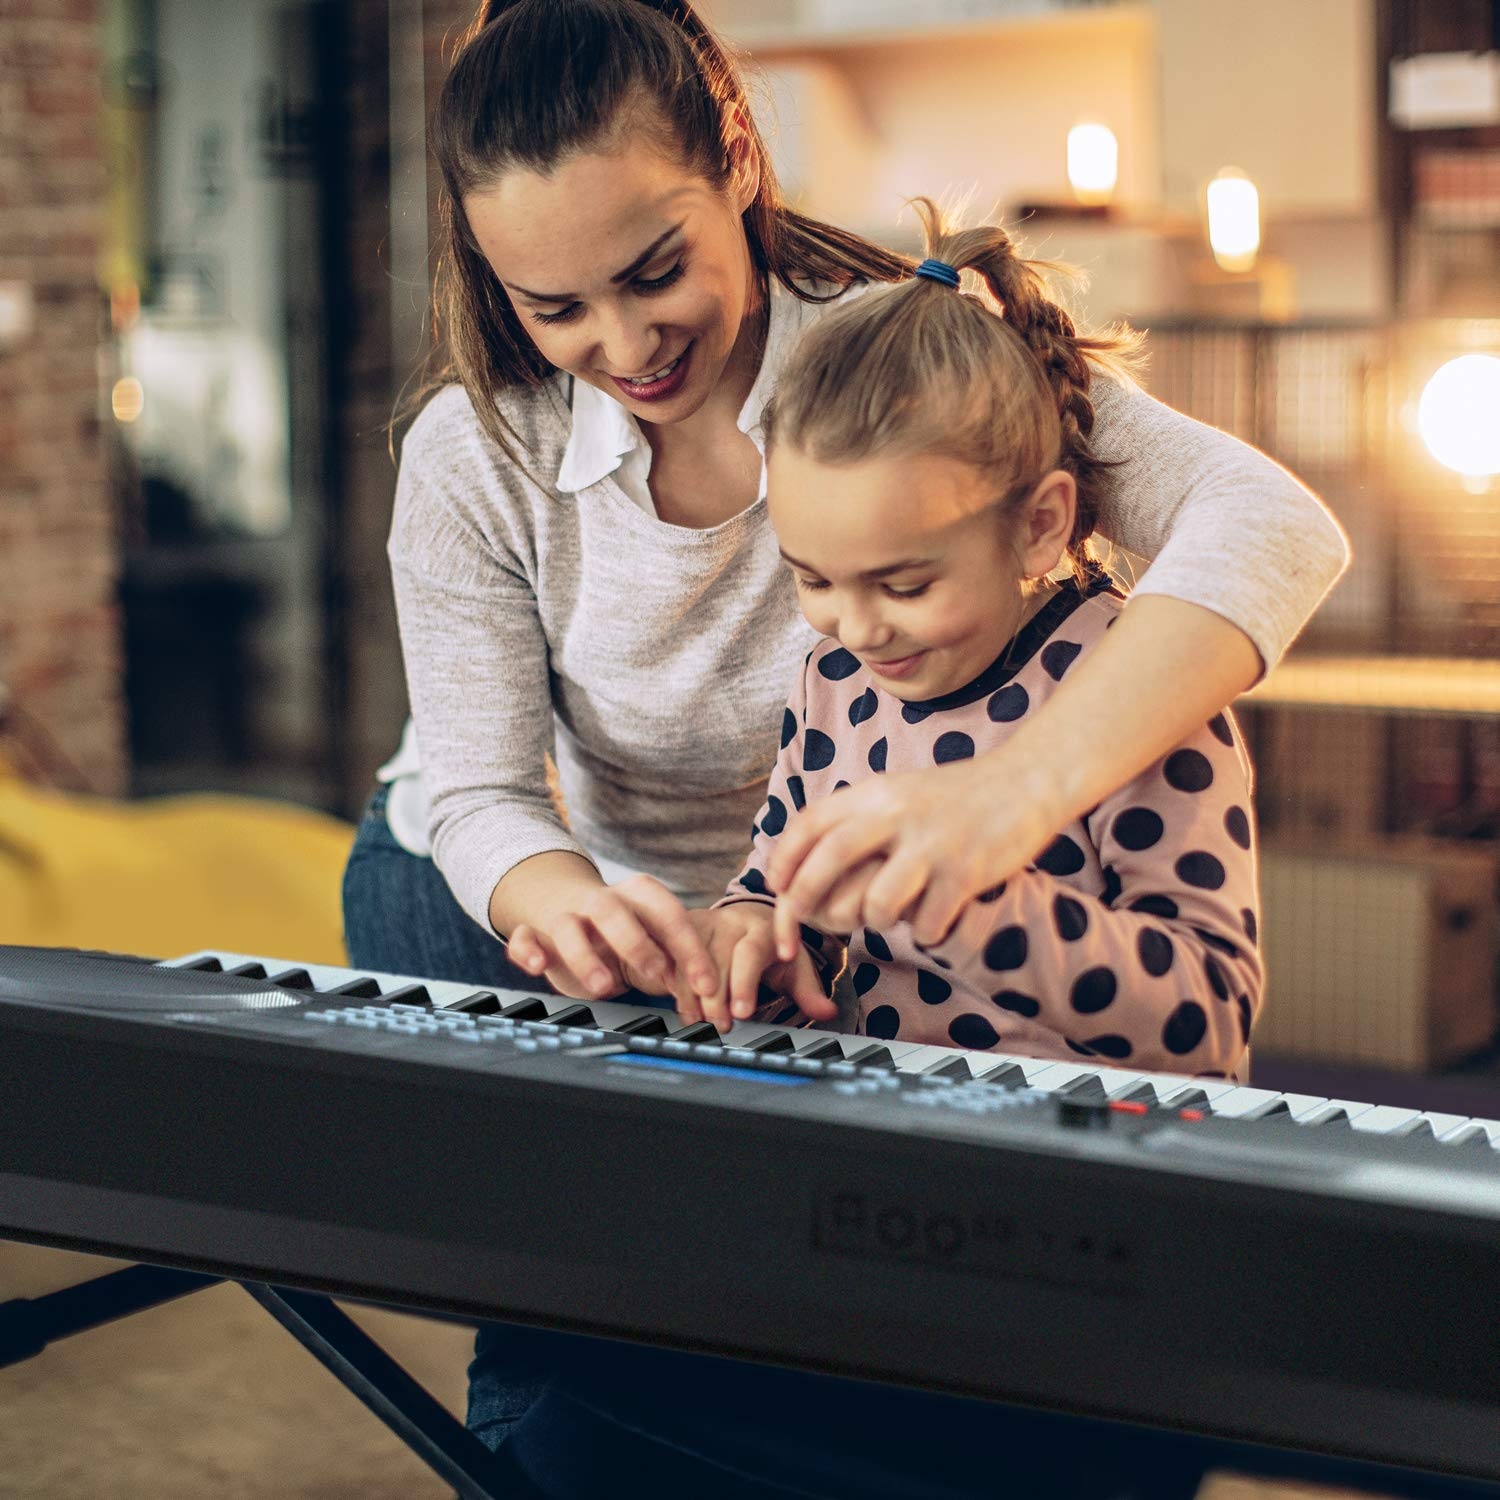 RIF6 Electric 61 Key Piano Keyboard - with Over Ear Headphones, Music Stand, Digital LCD Display, Teaching Modes and Adjustable Stool - Electronic Musical Instruments Starter Set for Kids and Adults by RIF6 (Image #5)